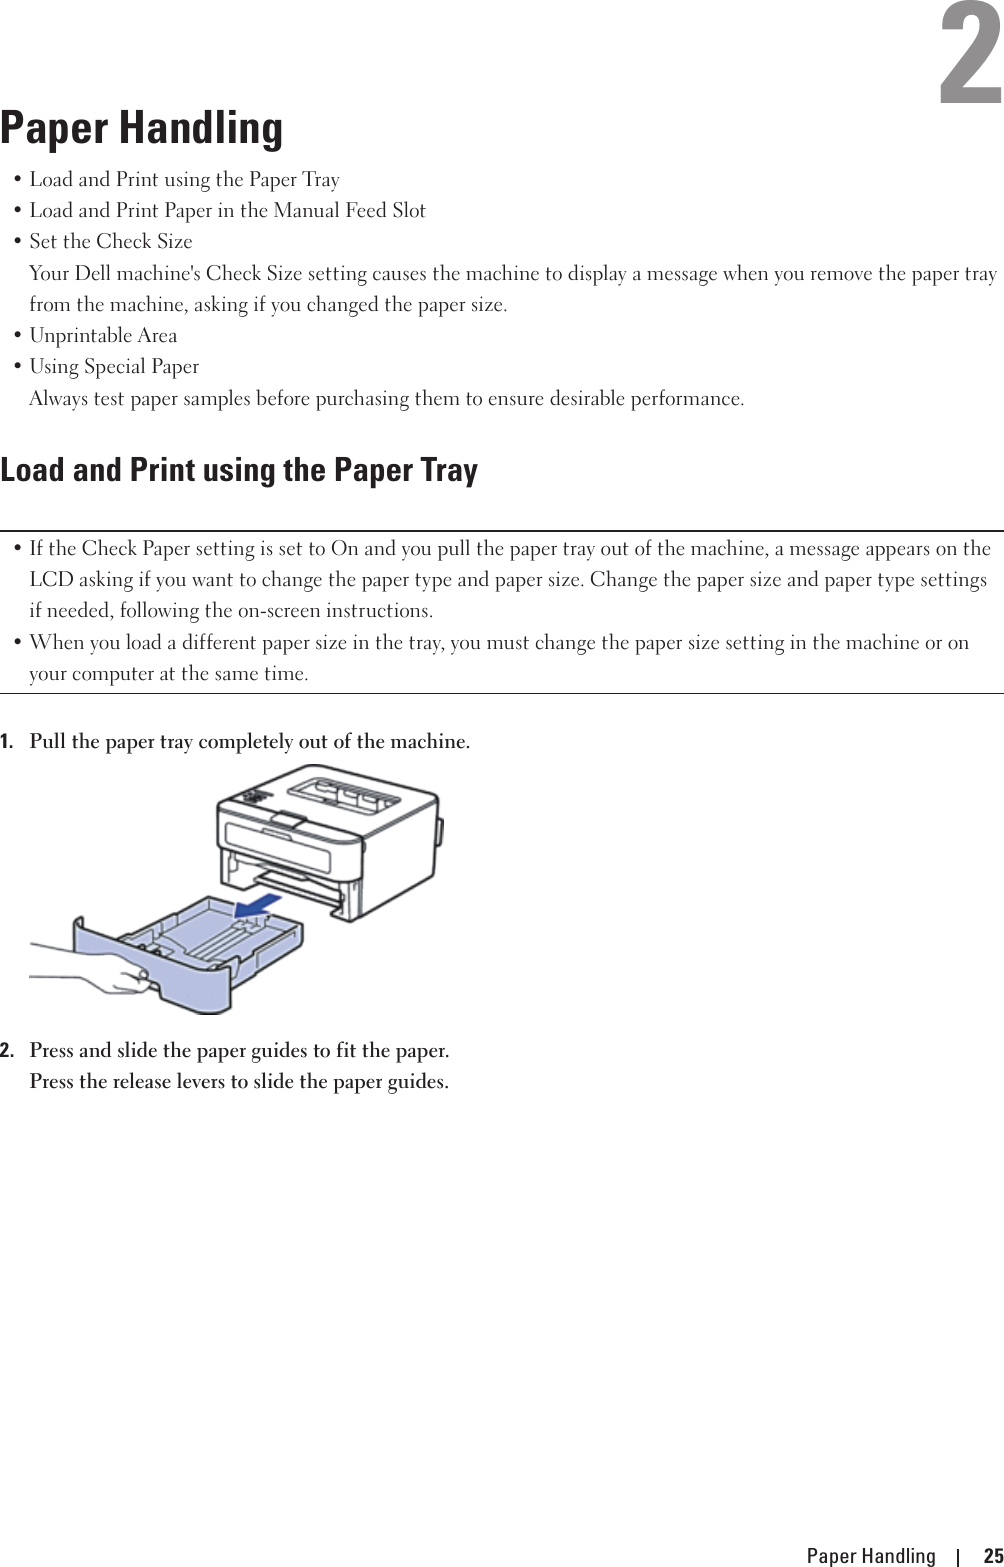 Dell e310dw printer User's Guide User Manual En us